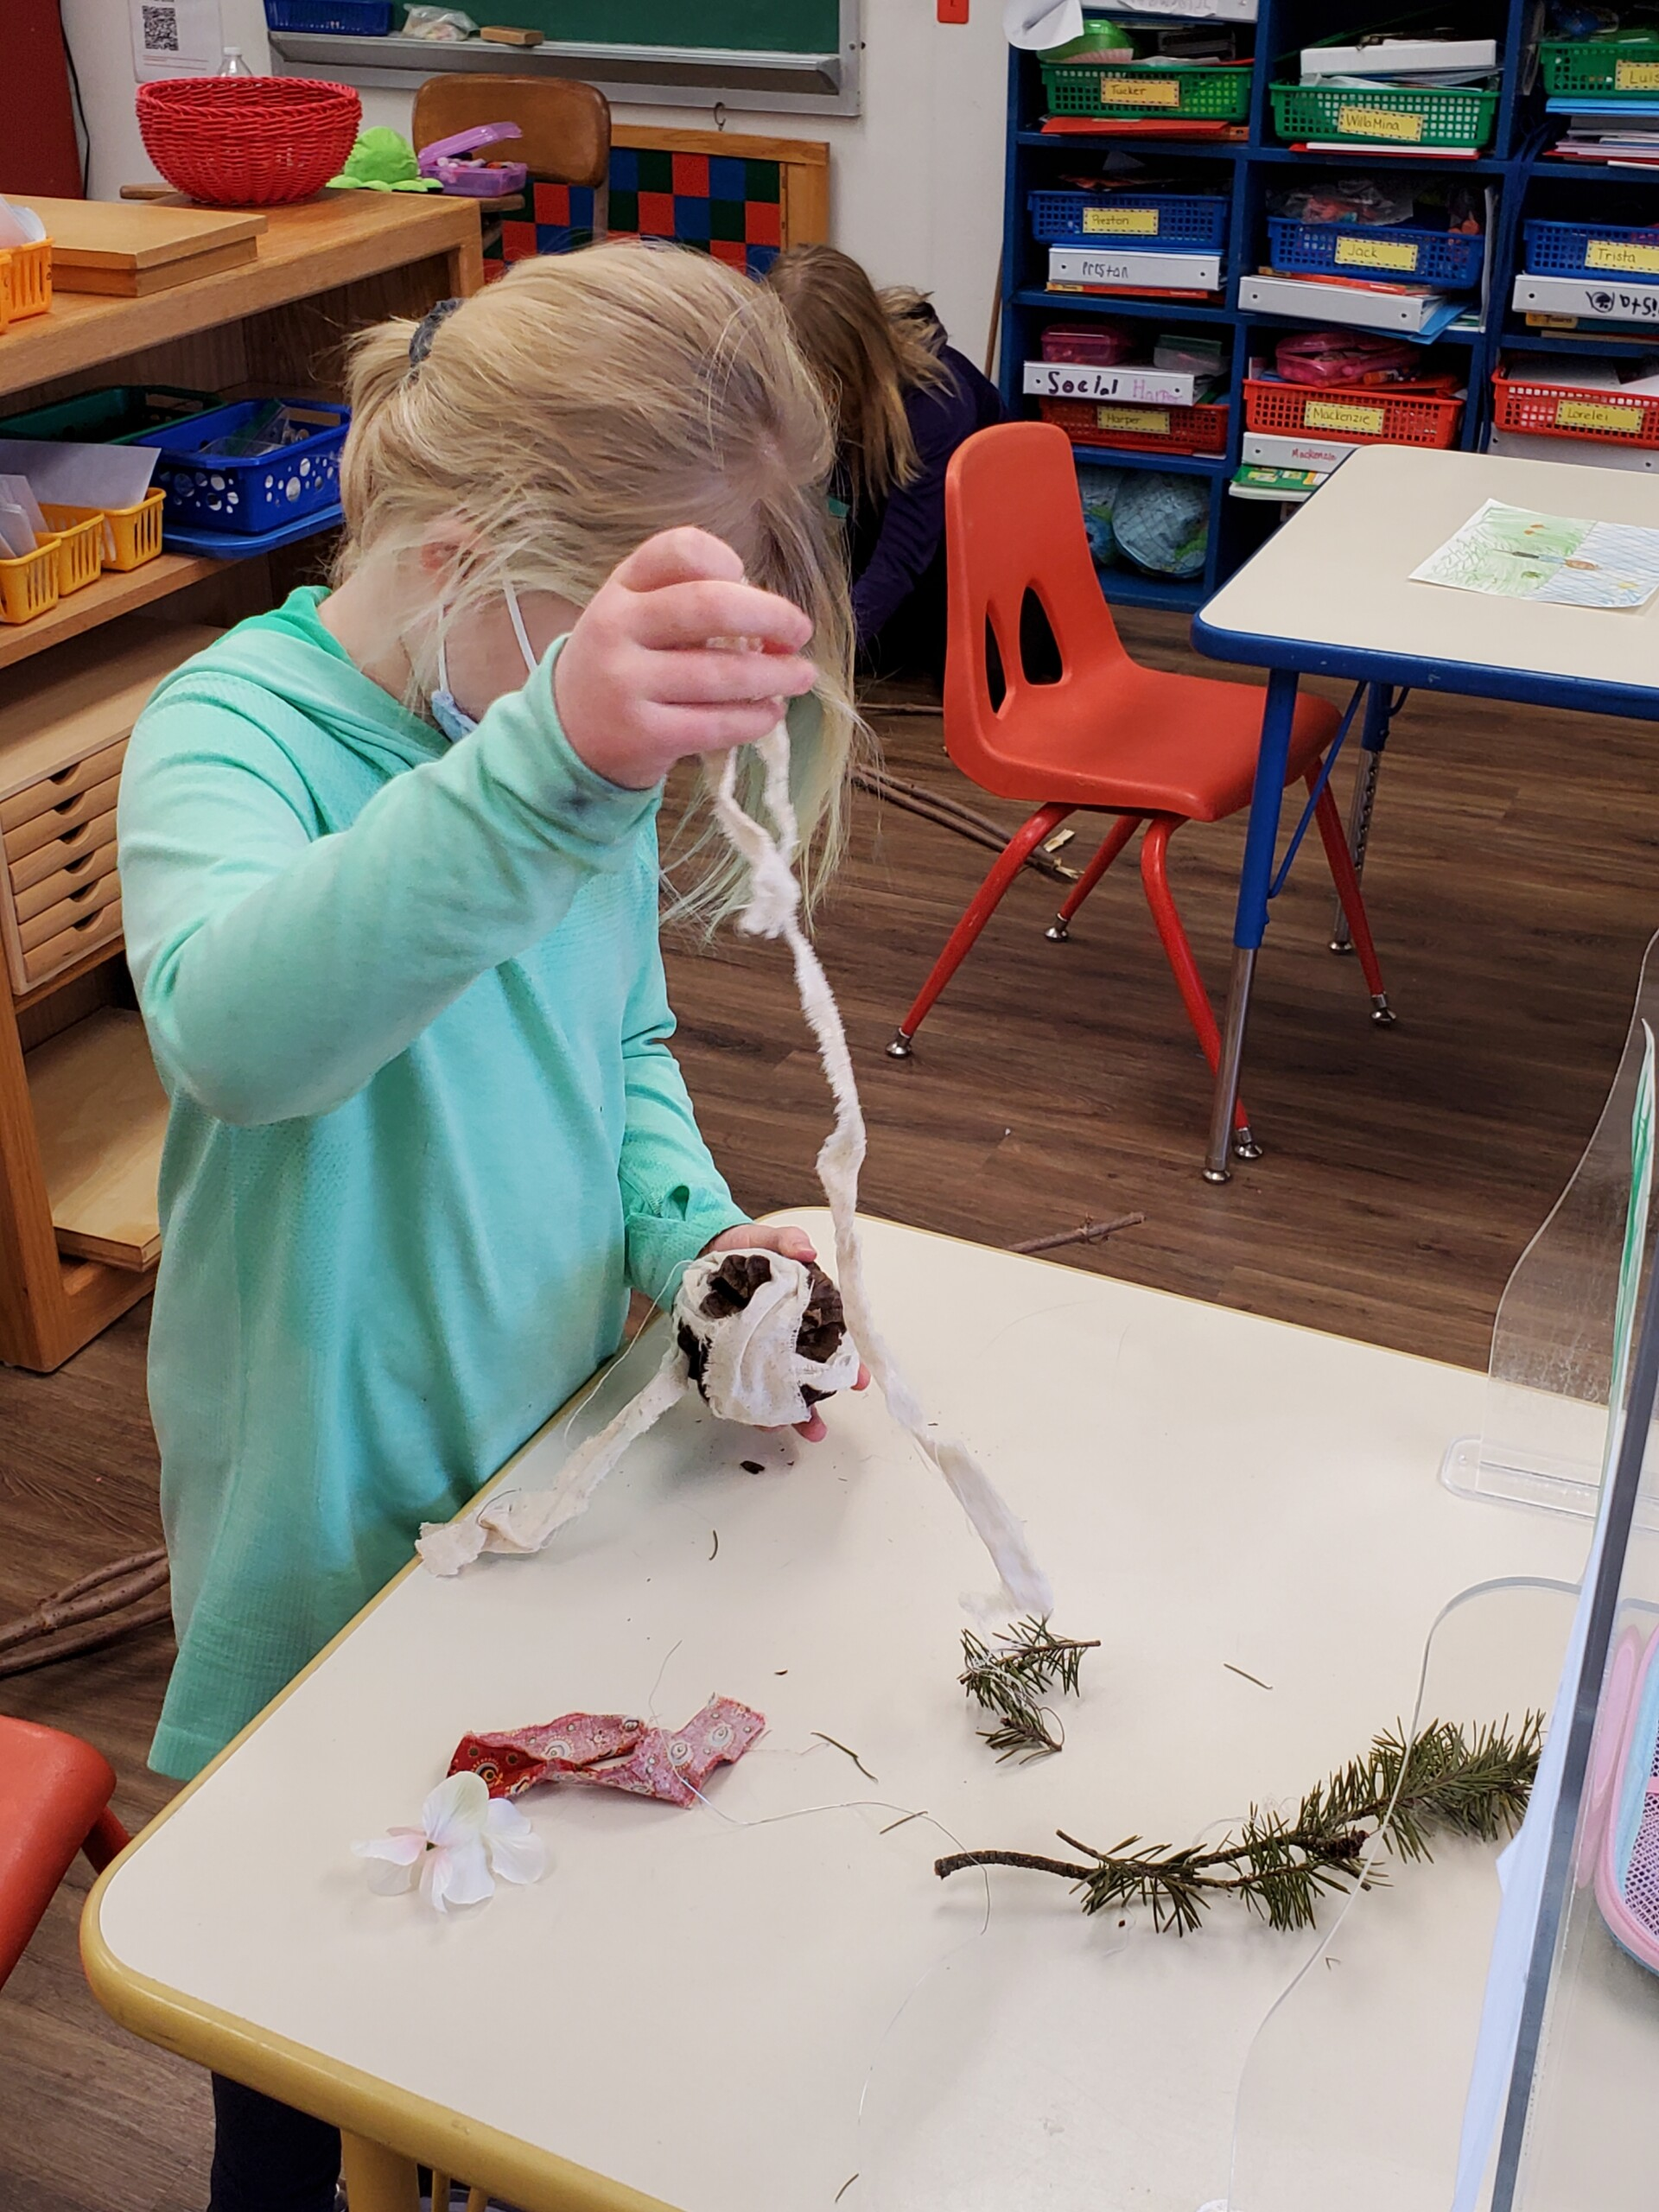 Student creating a scarecrow using cloth and branches